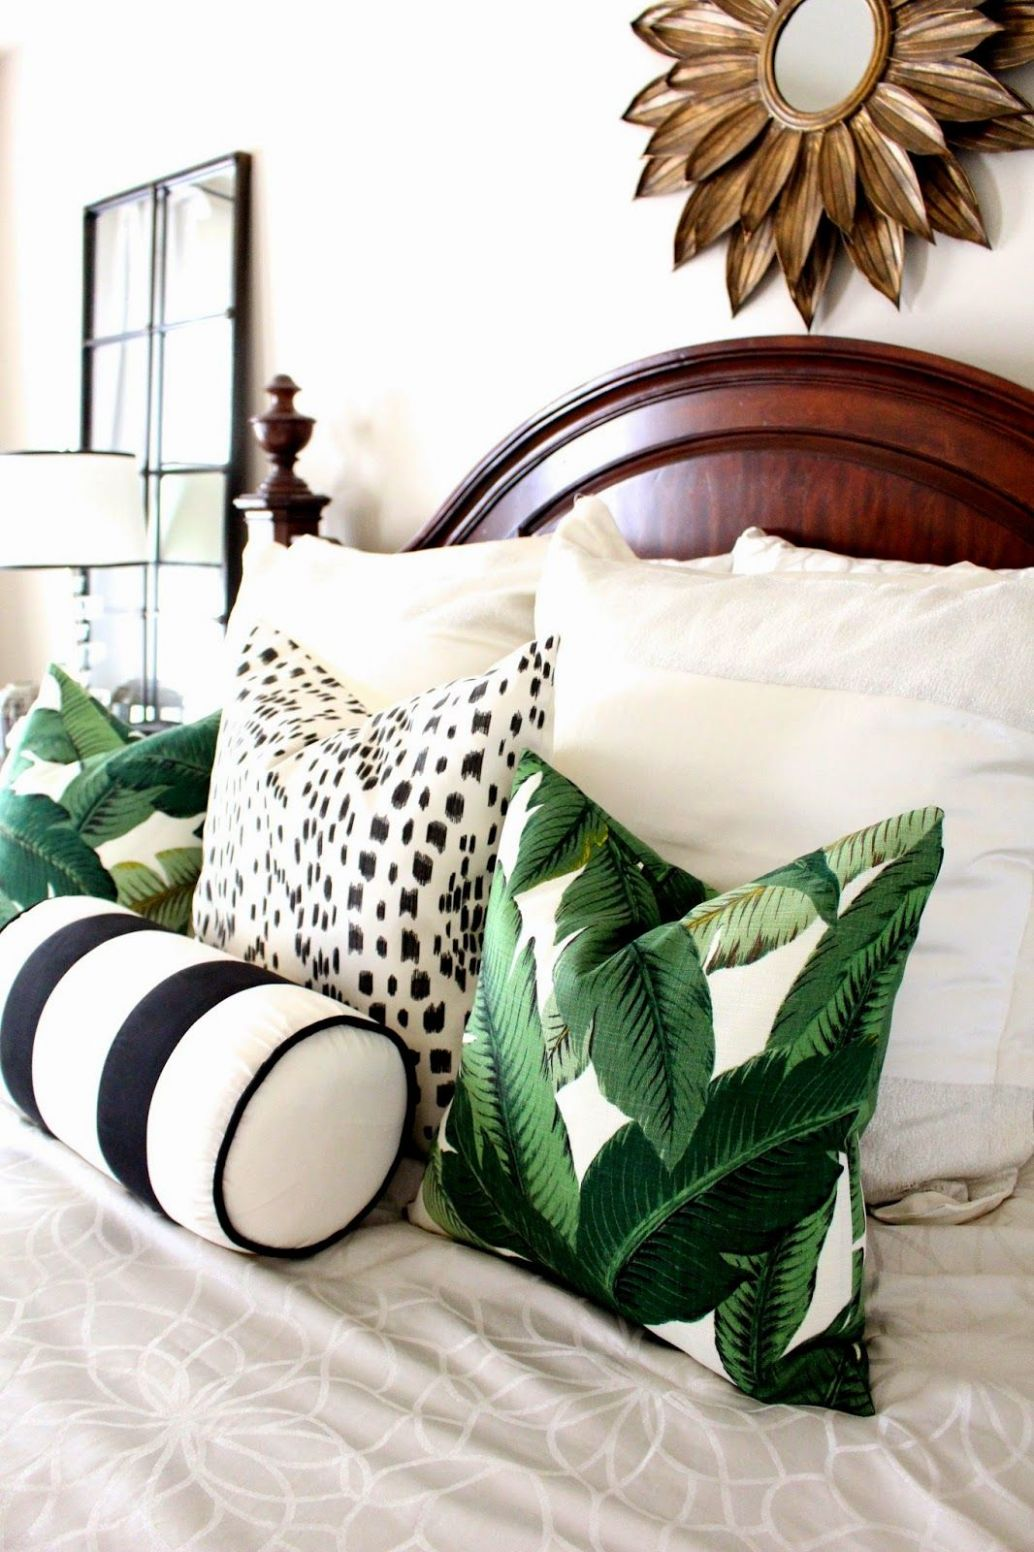 May 12 - Home Decor For Life (With images) | Home bedroom ..